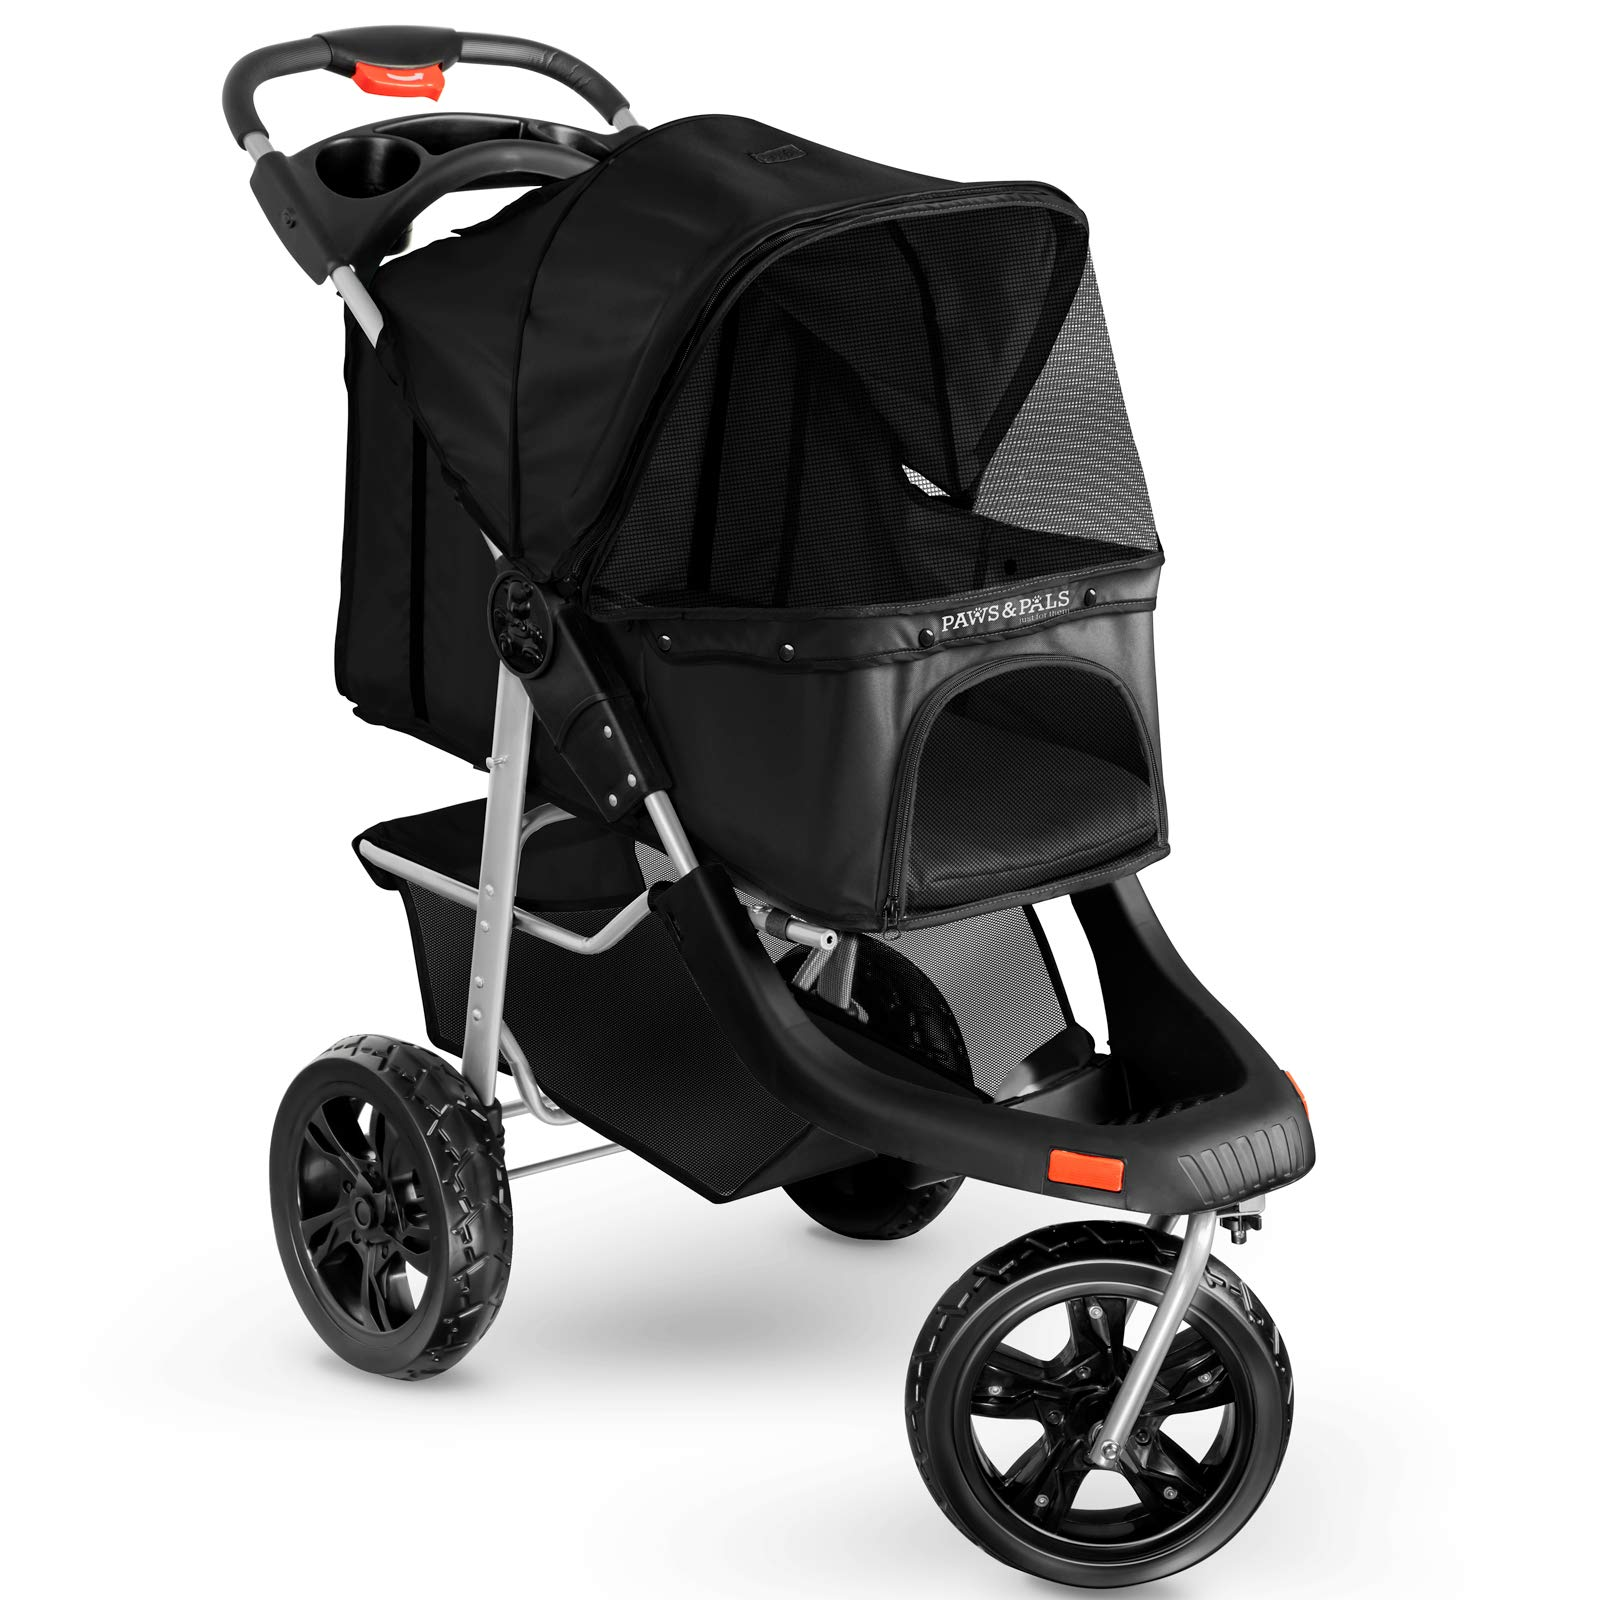 Paws & Pals Deluxe 3-Wheels Foldable Pet Stroller - Black by Paws & Pals